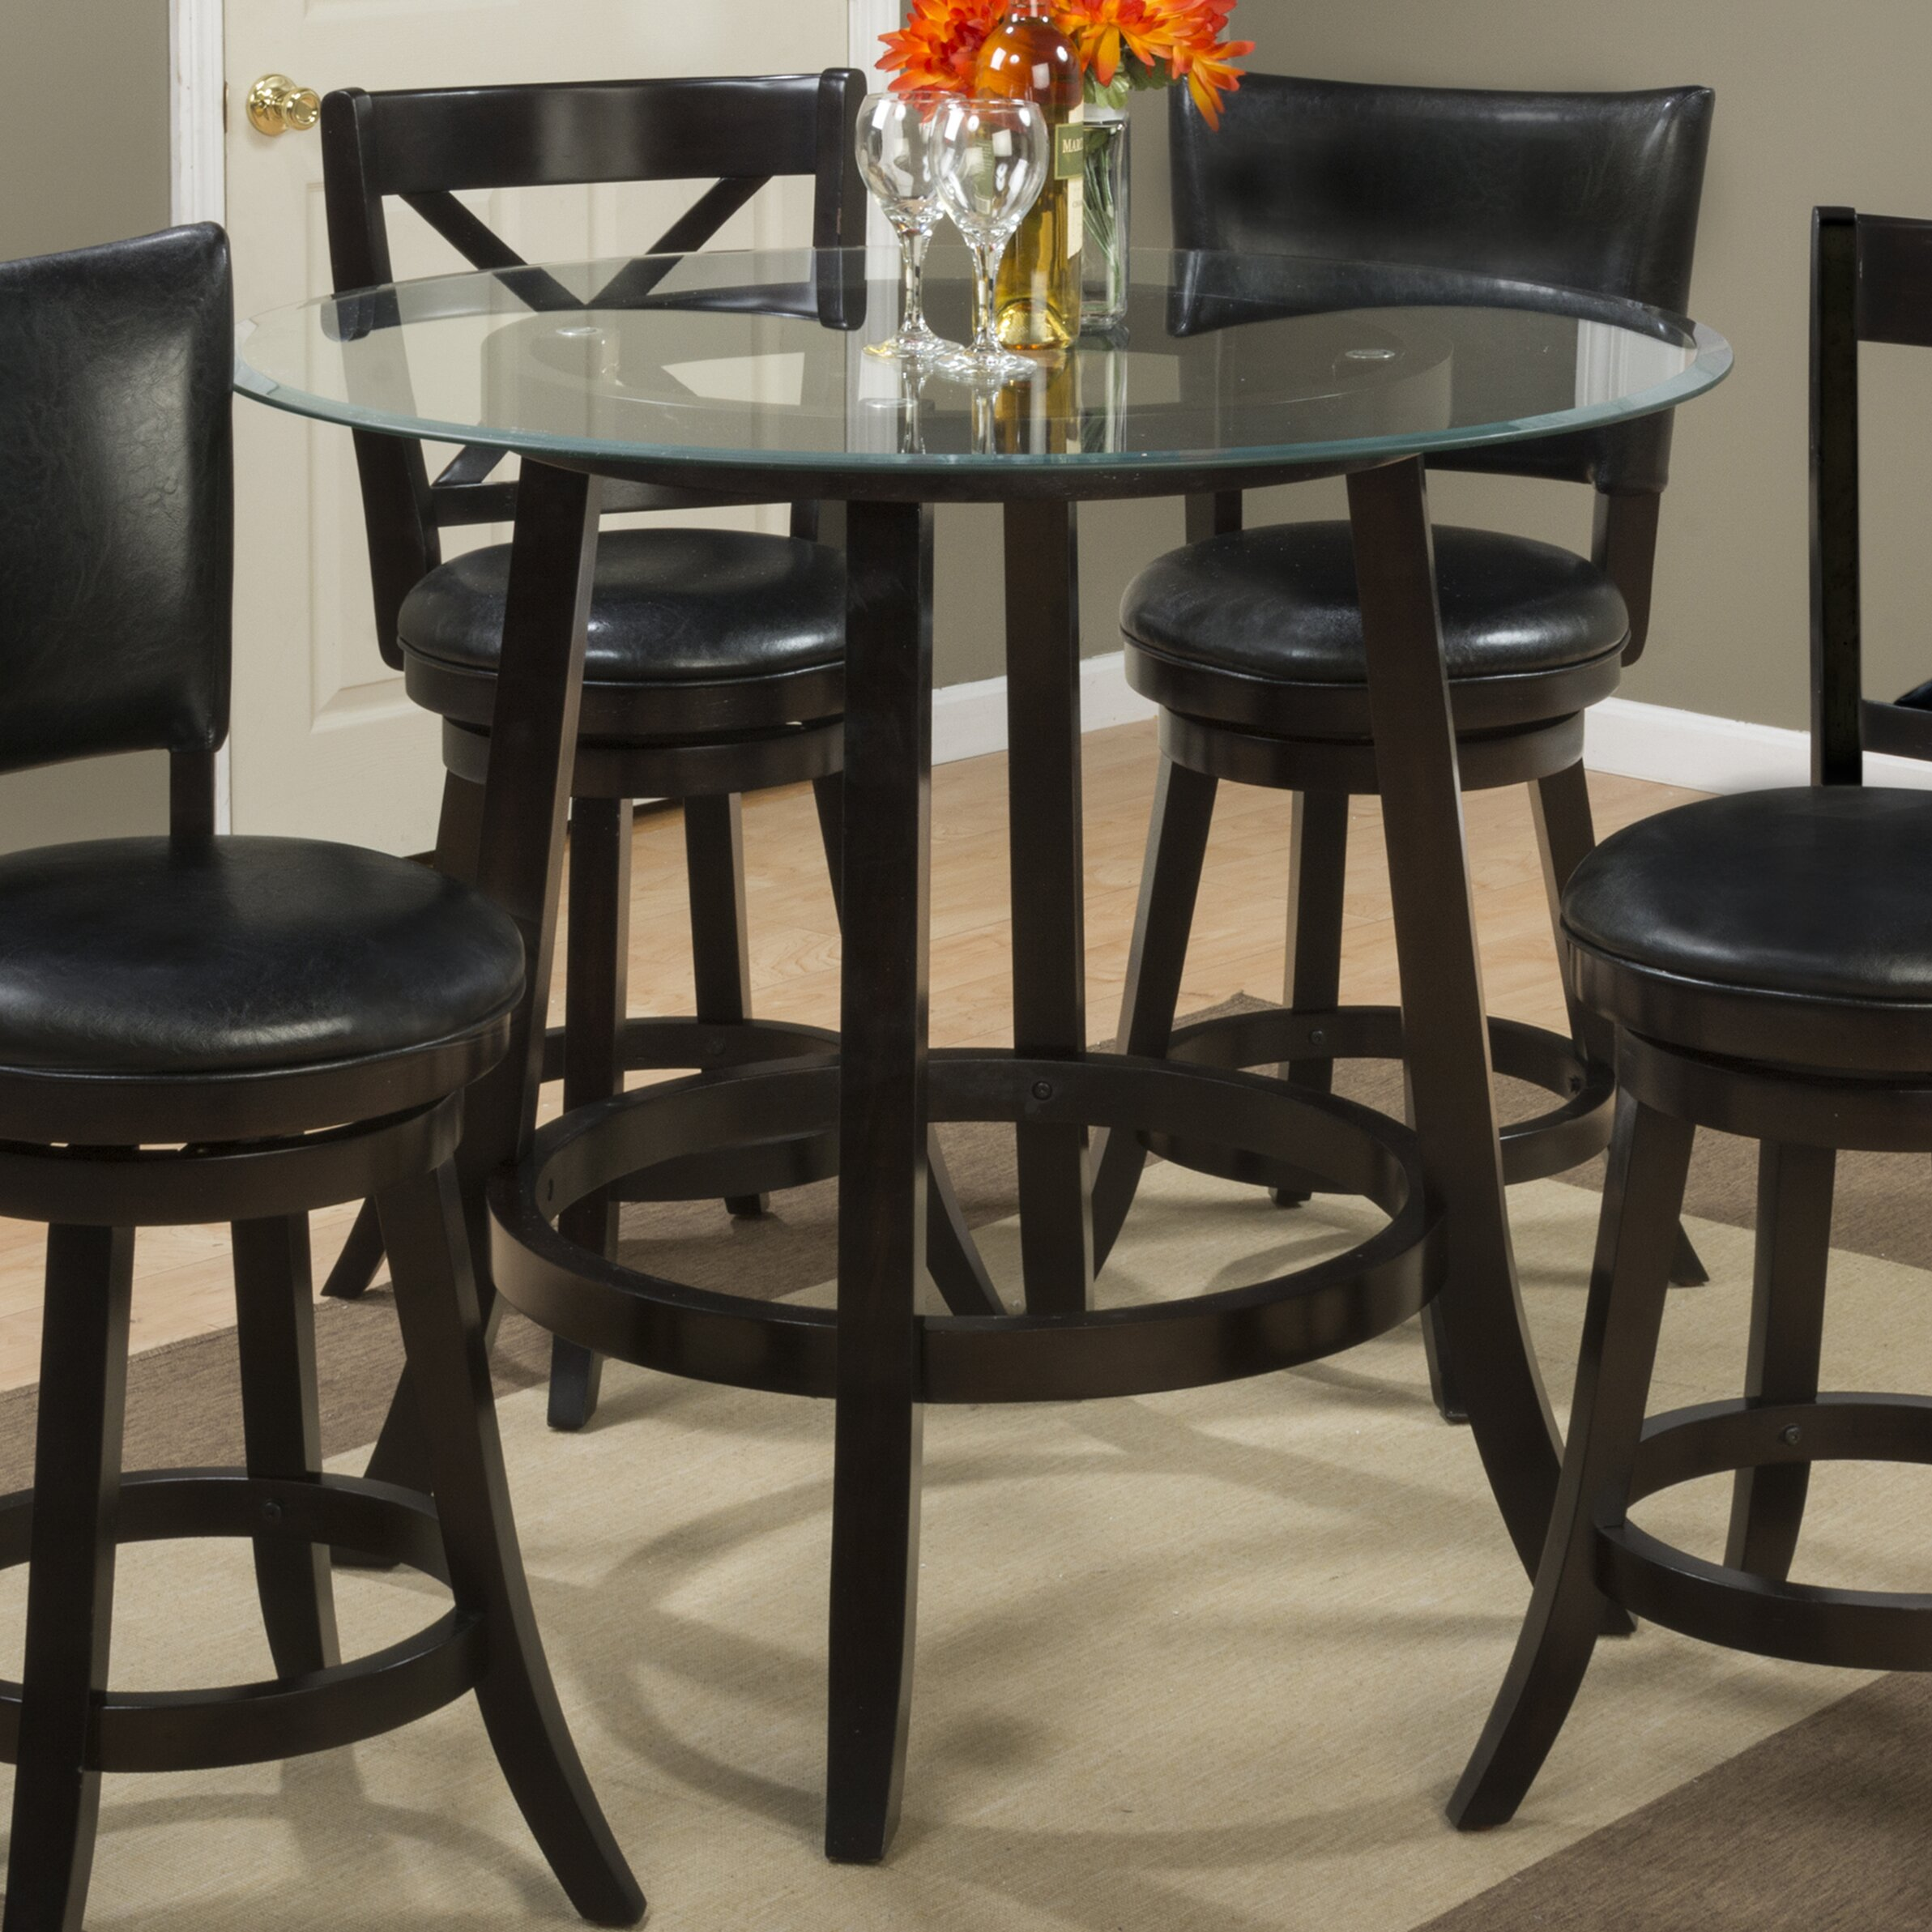 Wayfair High Top Table Images Living Room Wonderful Wayfair - Wayfair high top table